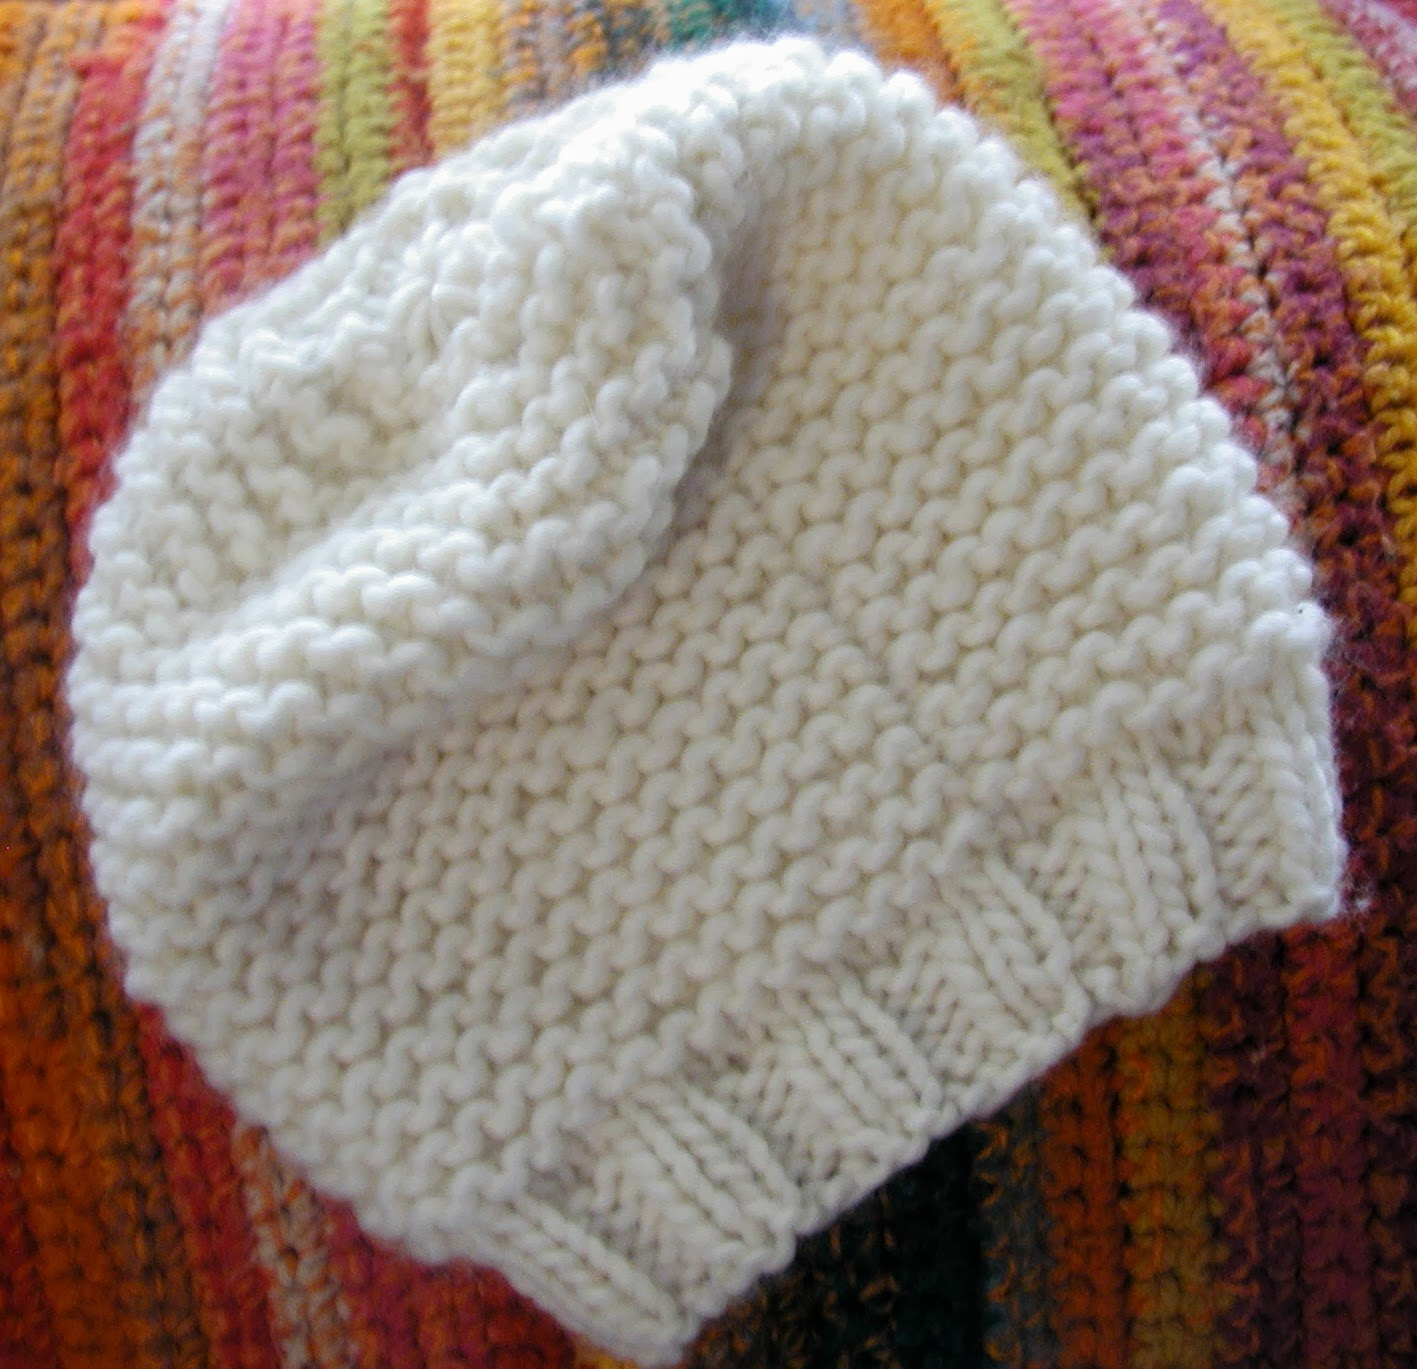 minis knits and purls: December 2013